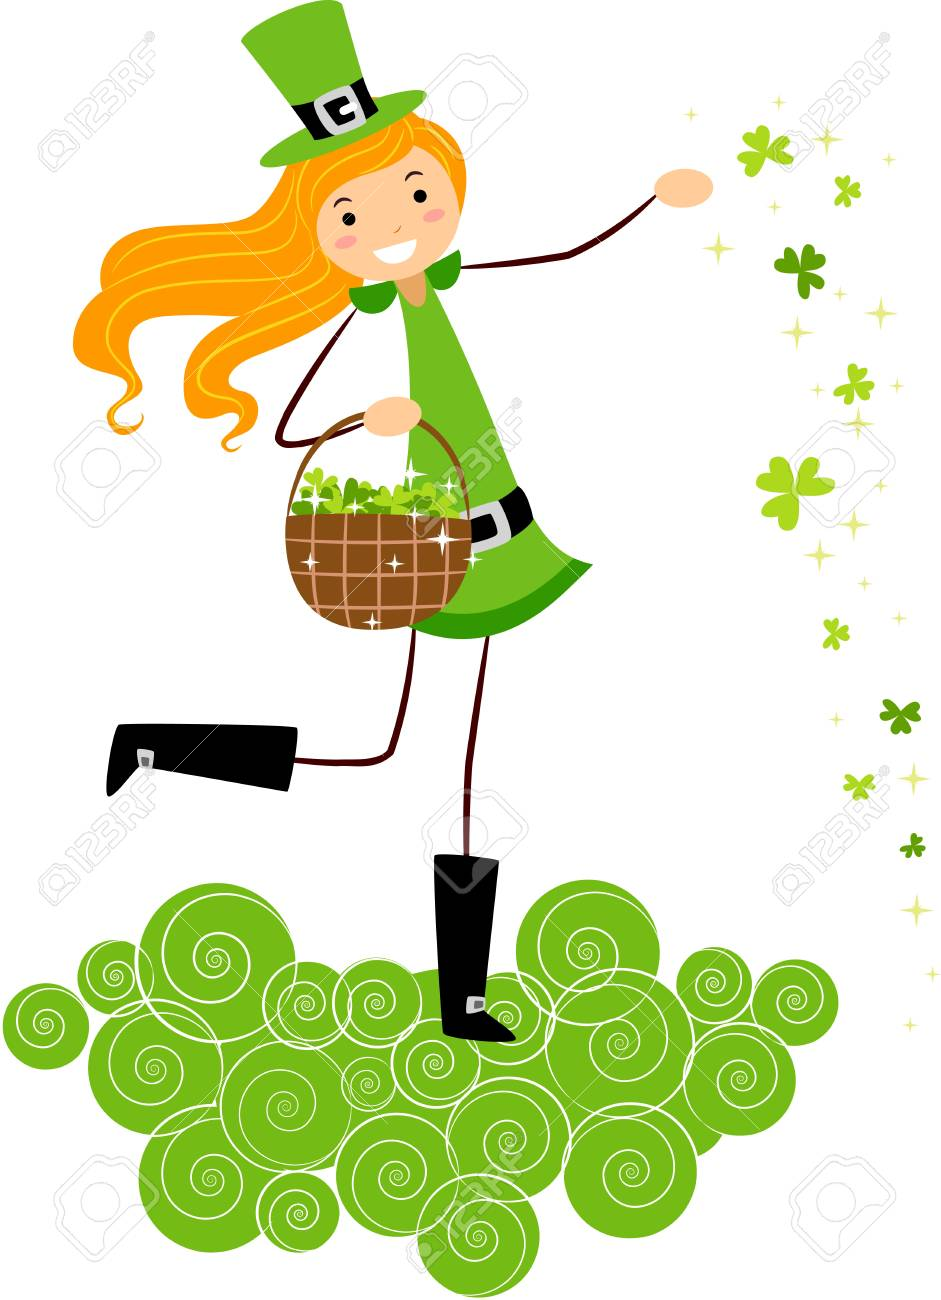 Illustration of a Girl Scattering Clovers Stock Photo - 8993617